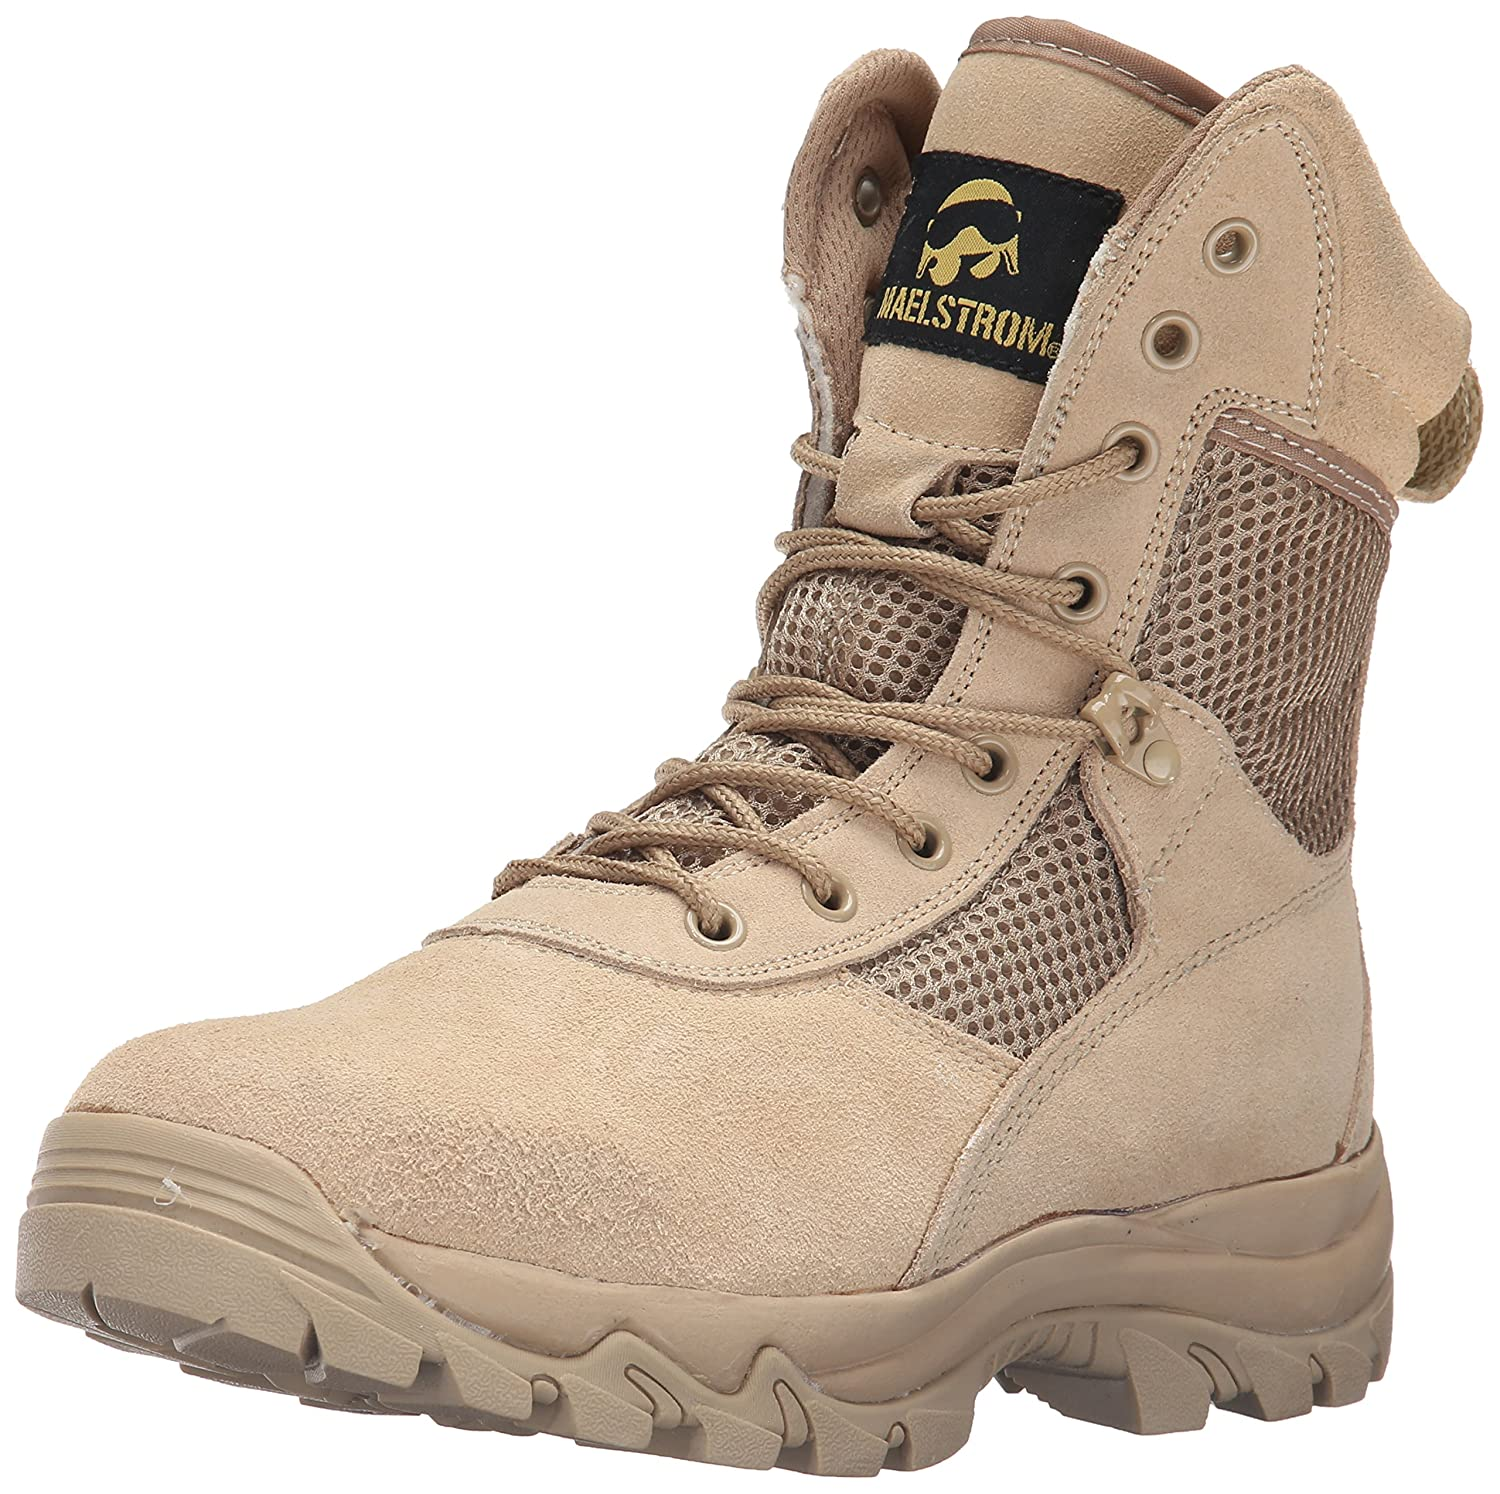 b82163e3800 Top 10 Best Military Tactical Boots for Men Reviews 2019-2020 on ...